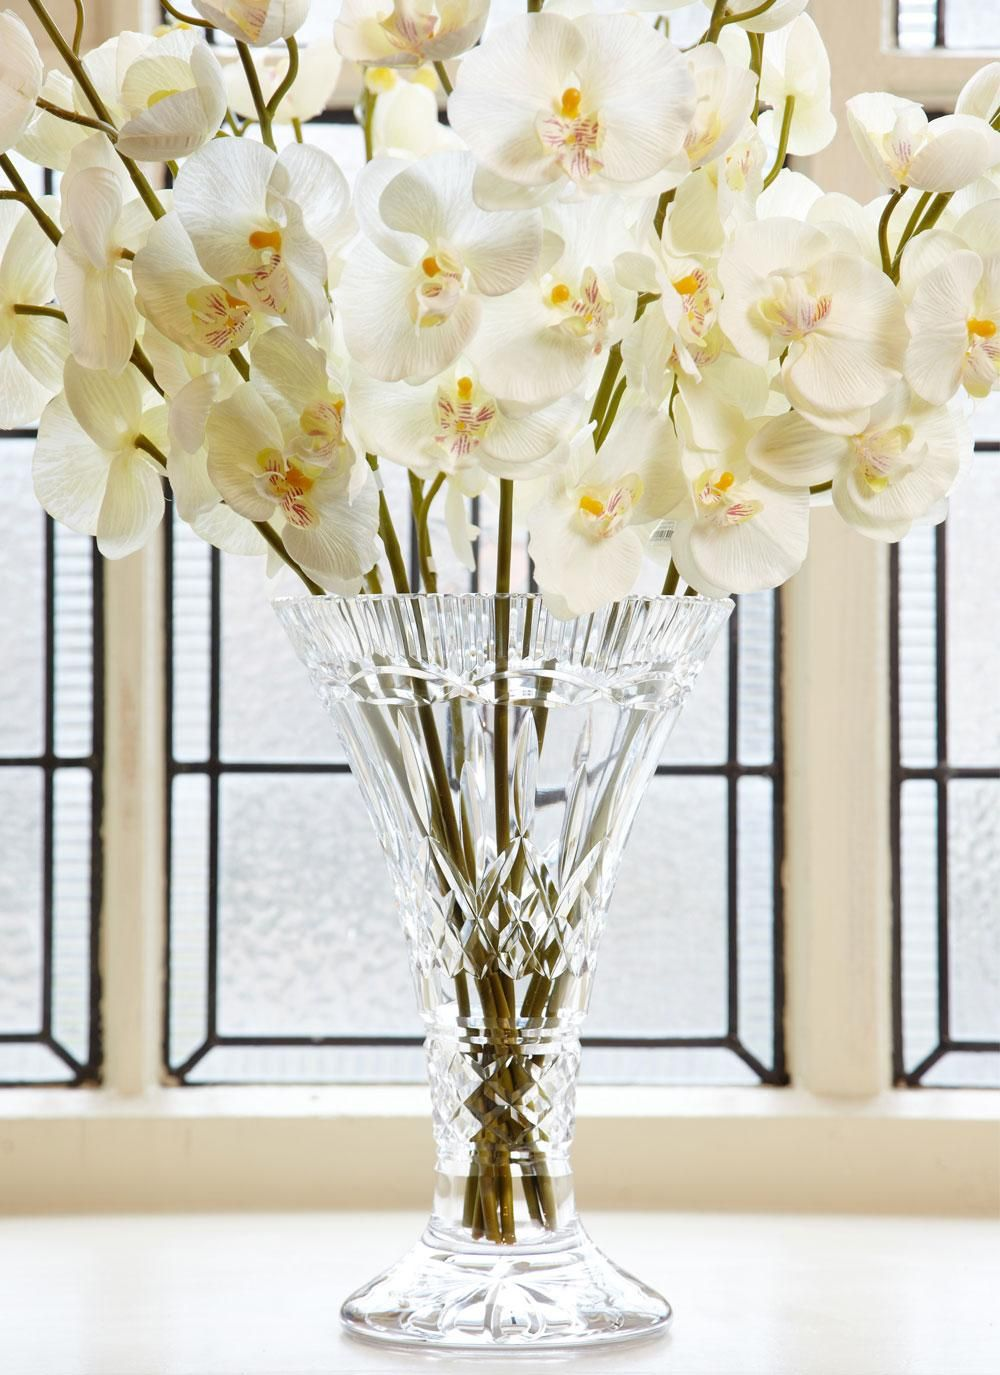 Waterford crystal lismore statement vase accentuate the beauty of waterford crystal lismore statement vase accentuate the beauty of roses floral arrangements and cut floridaeventfo Image collections